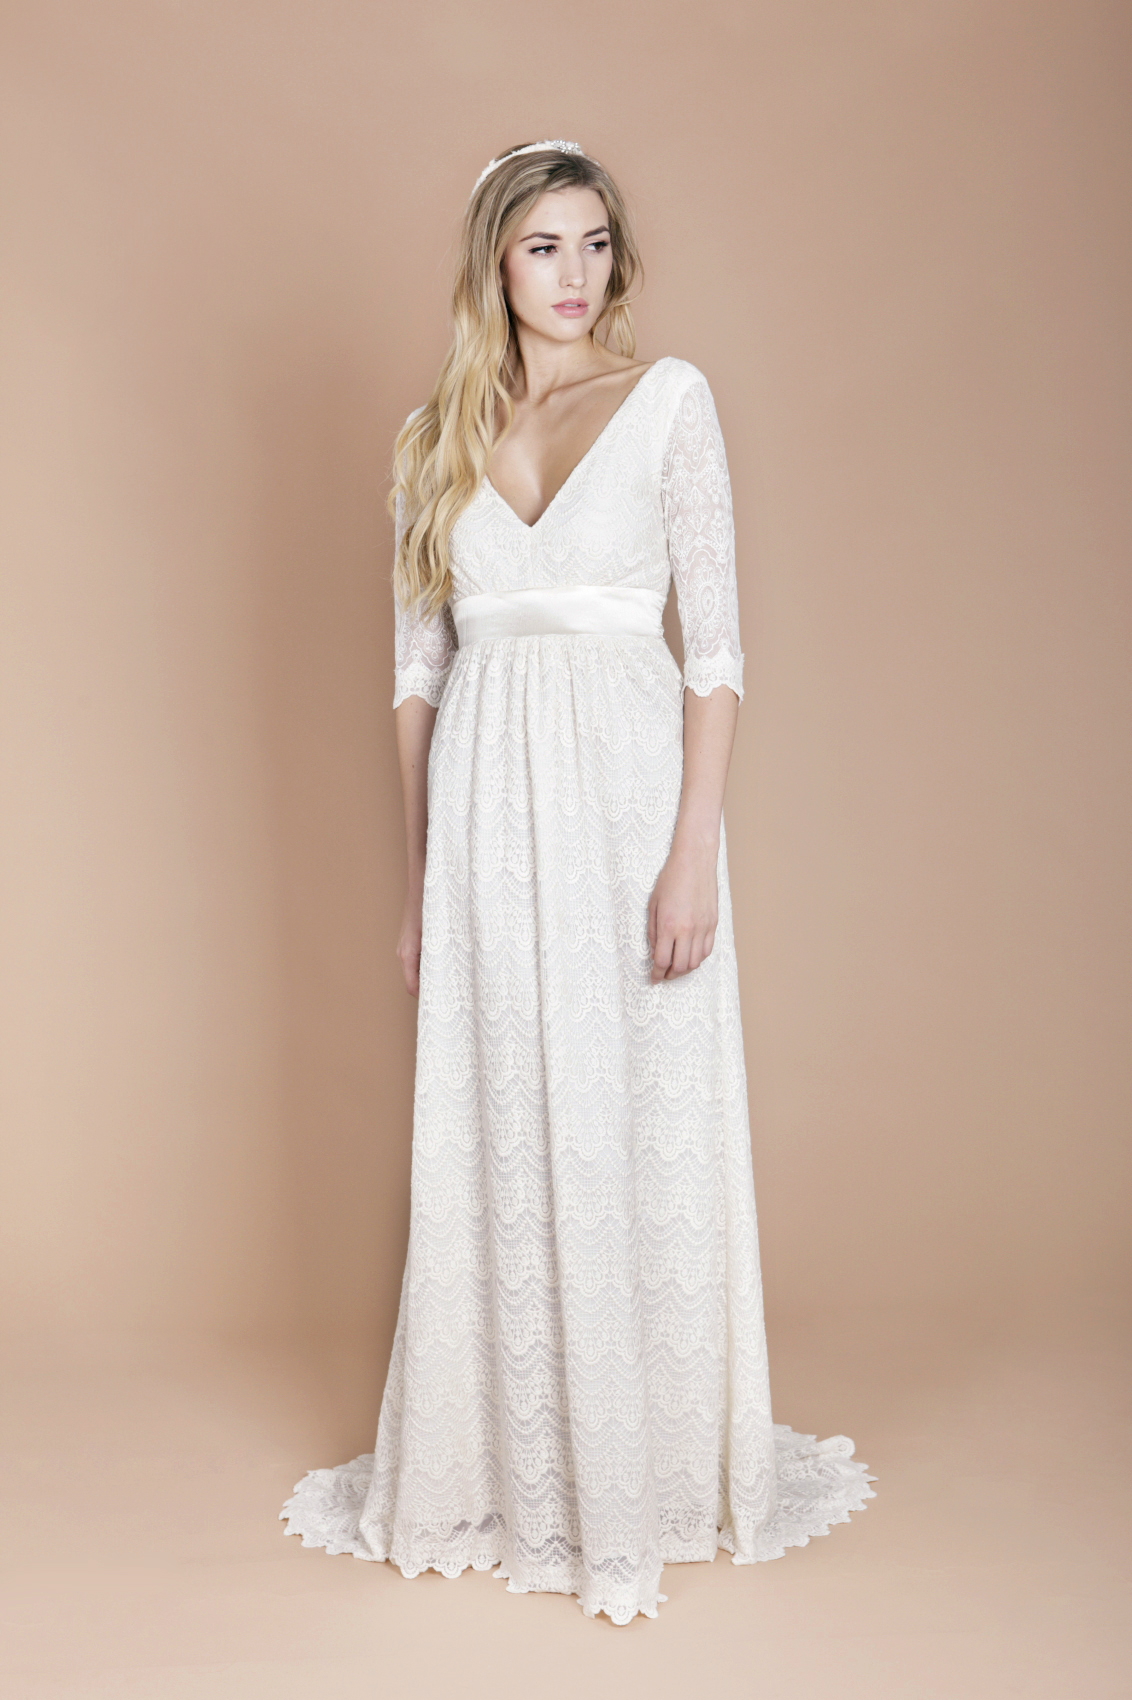 The CHARLEY dress by Minna. Available soon from Archive 12. £1350